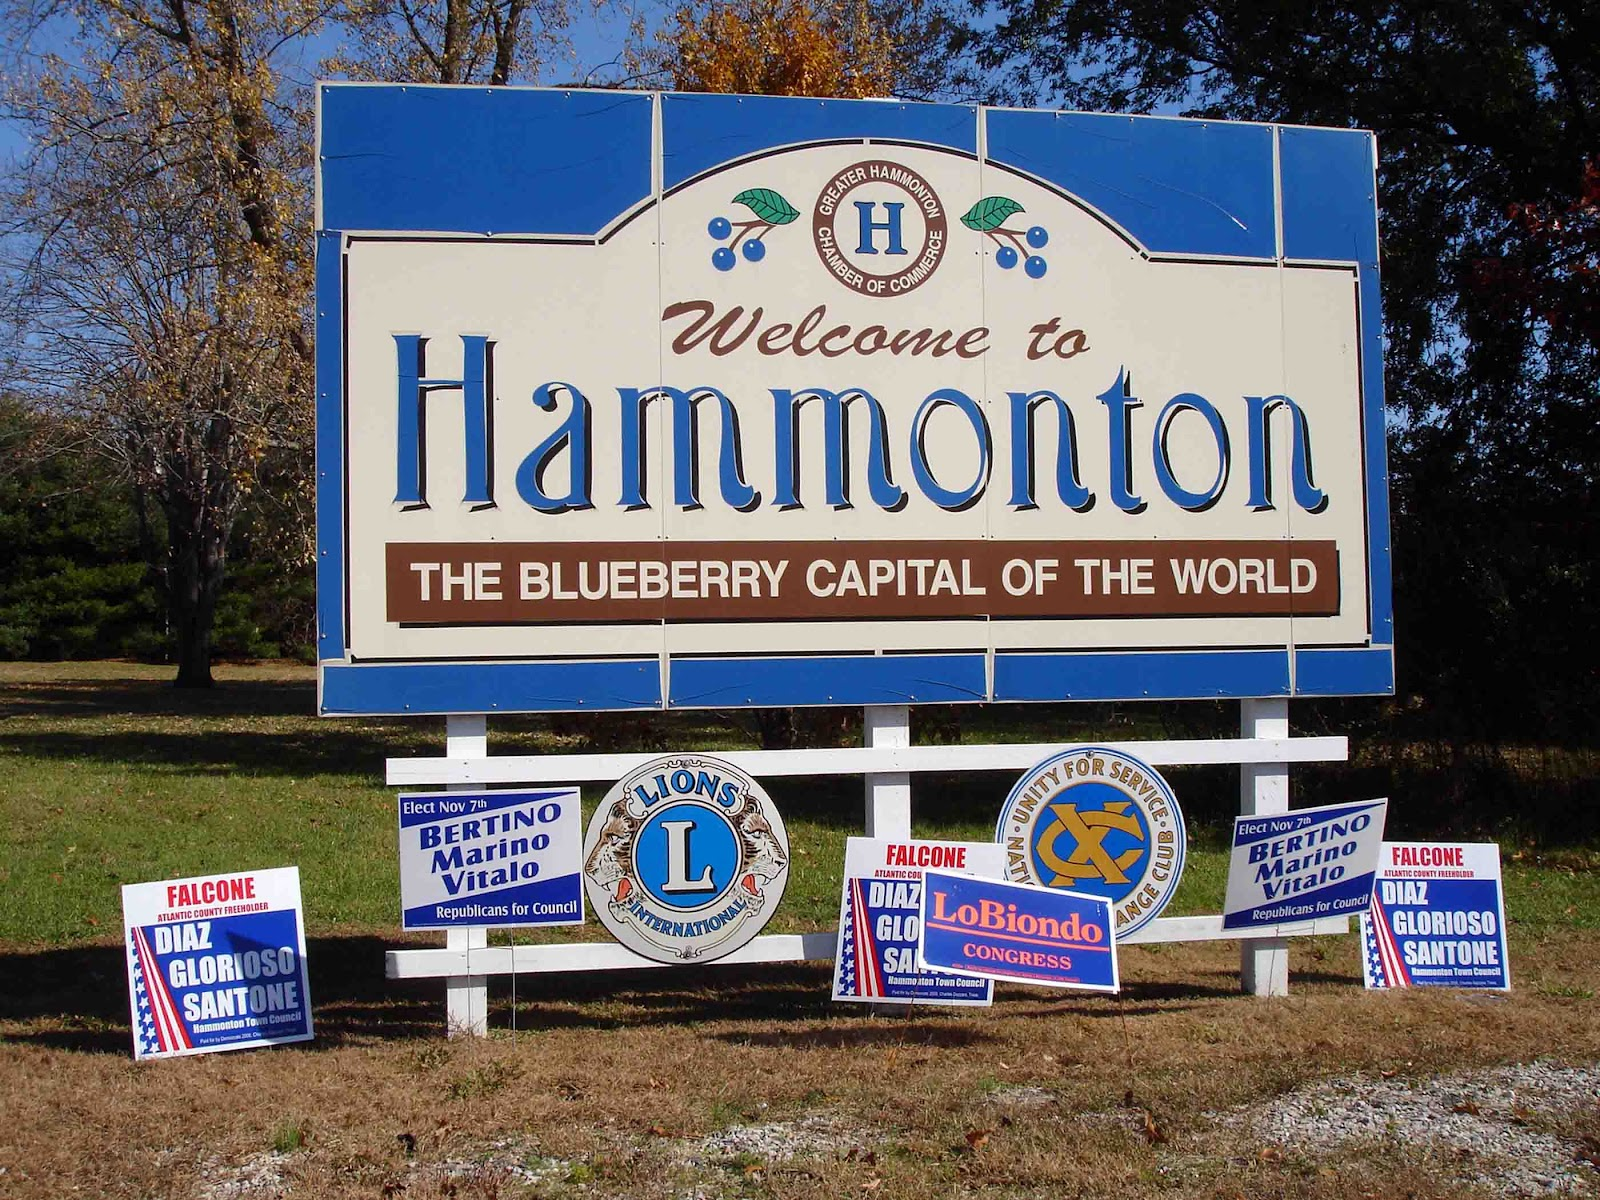 Hammonton (NJ) United States  city photo : Capital of the World: Welcome to Hammonton, New Jersey, 2006.